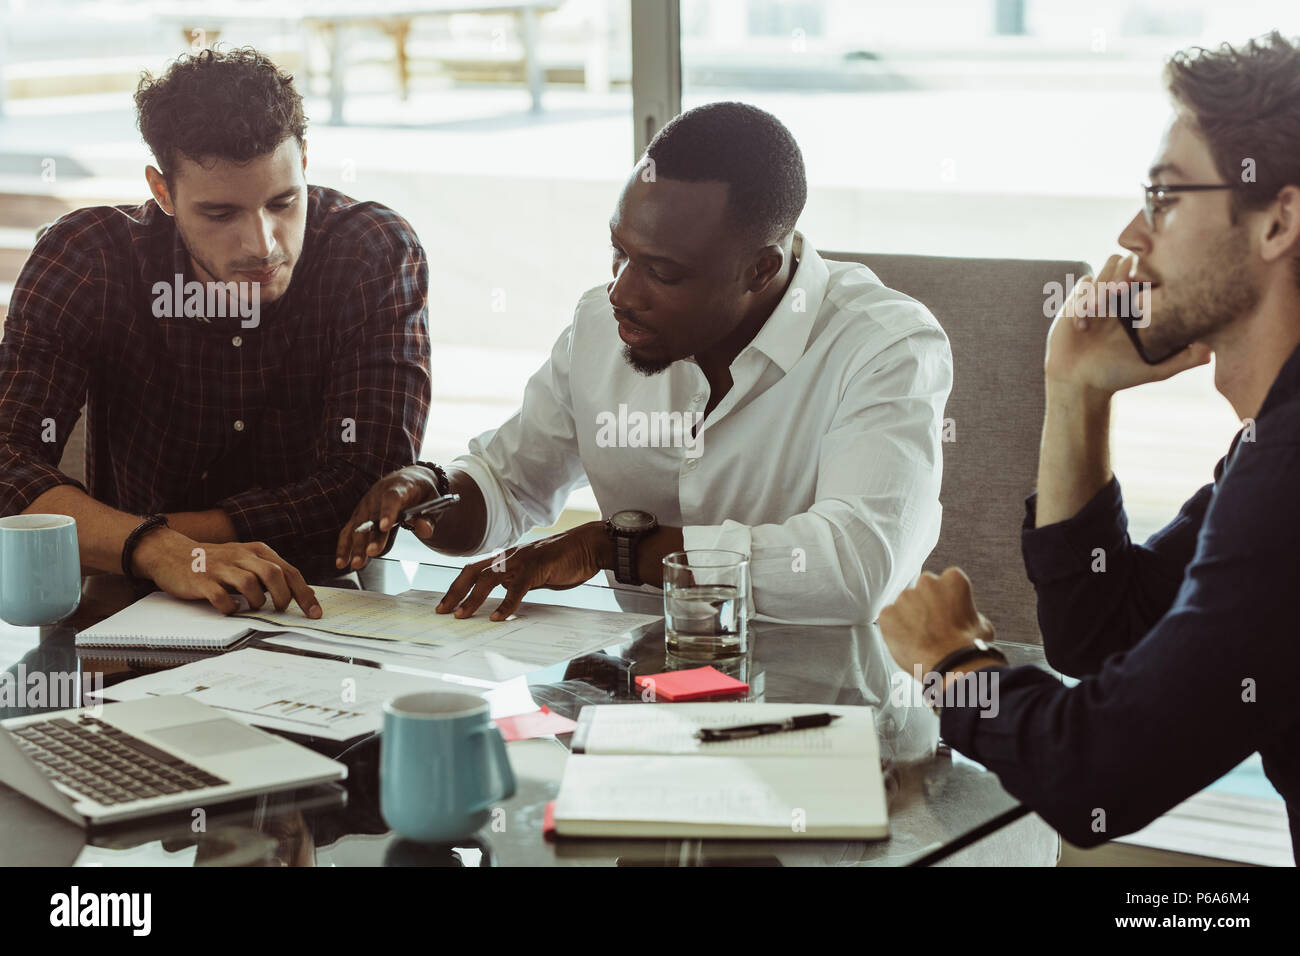 Businessmen discussing work sitting at conference table in office. Two men discussing work while another man is talking on mobile phone. - Stock Image